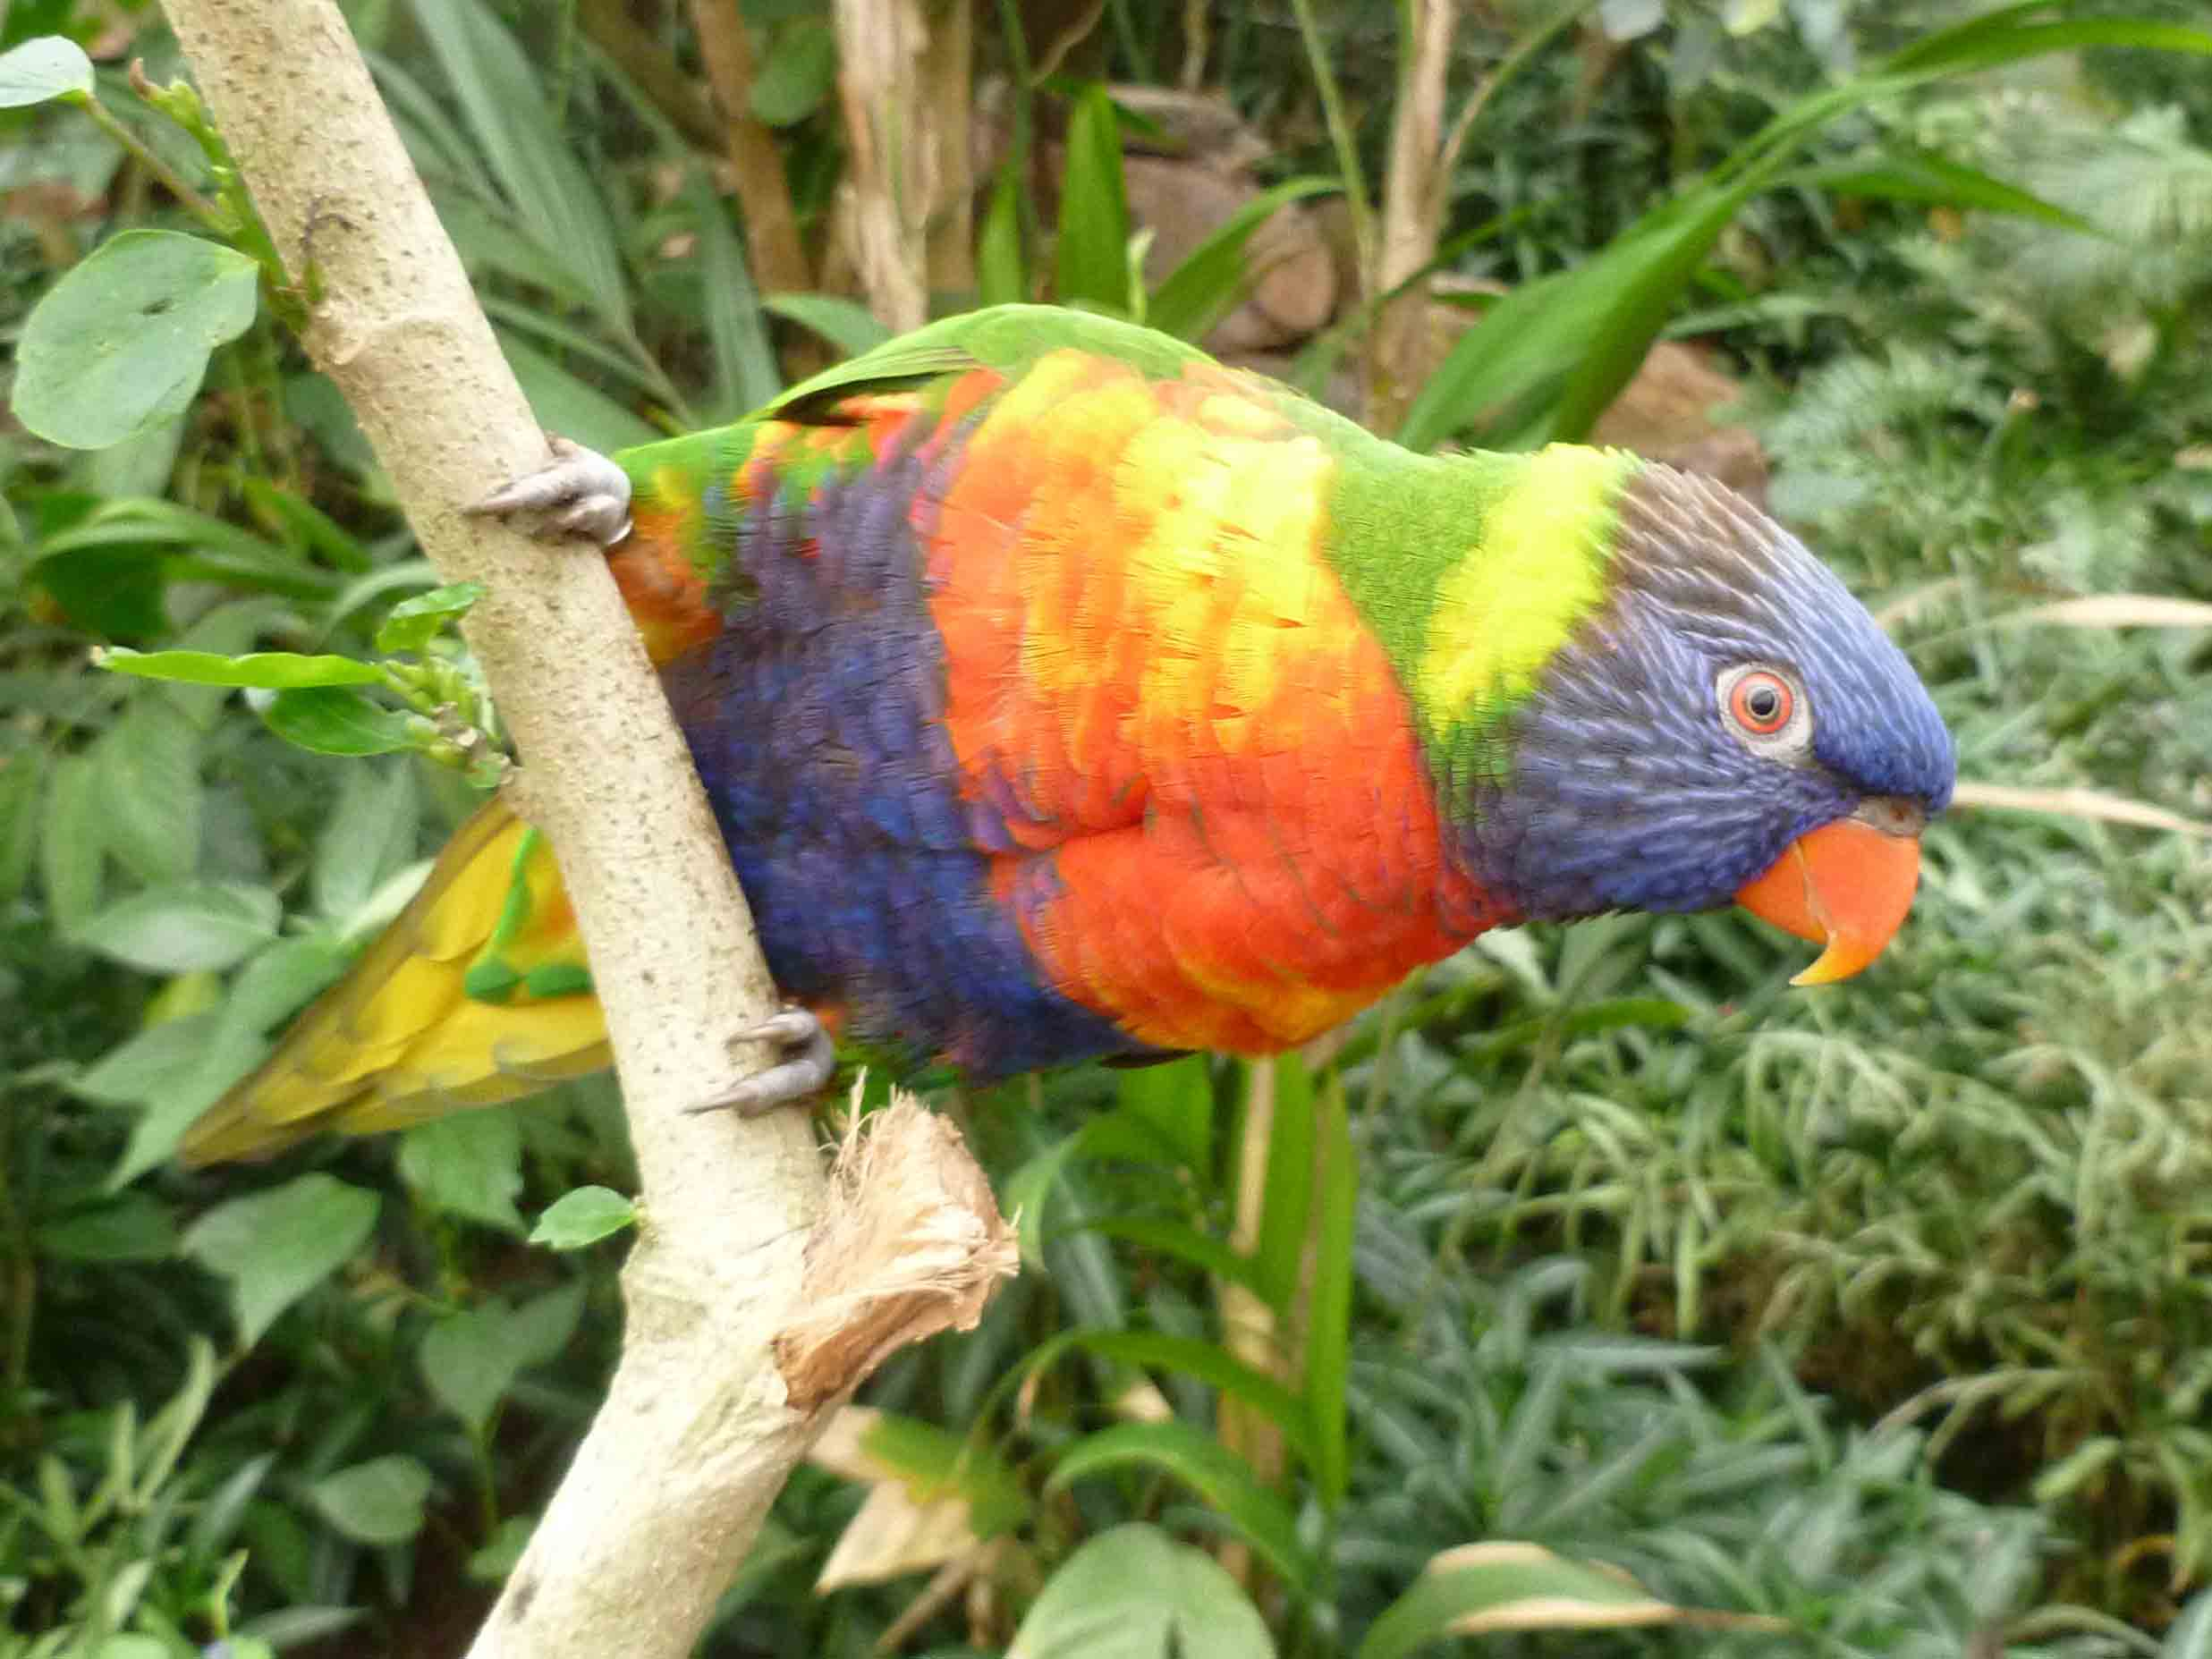 Honfleur garden zoo and butterfly house in normandy for Oiseaux des jardins en provence